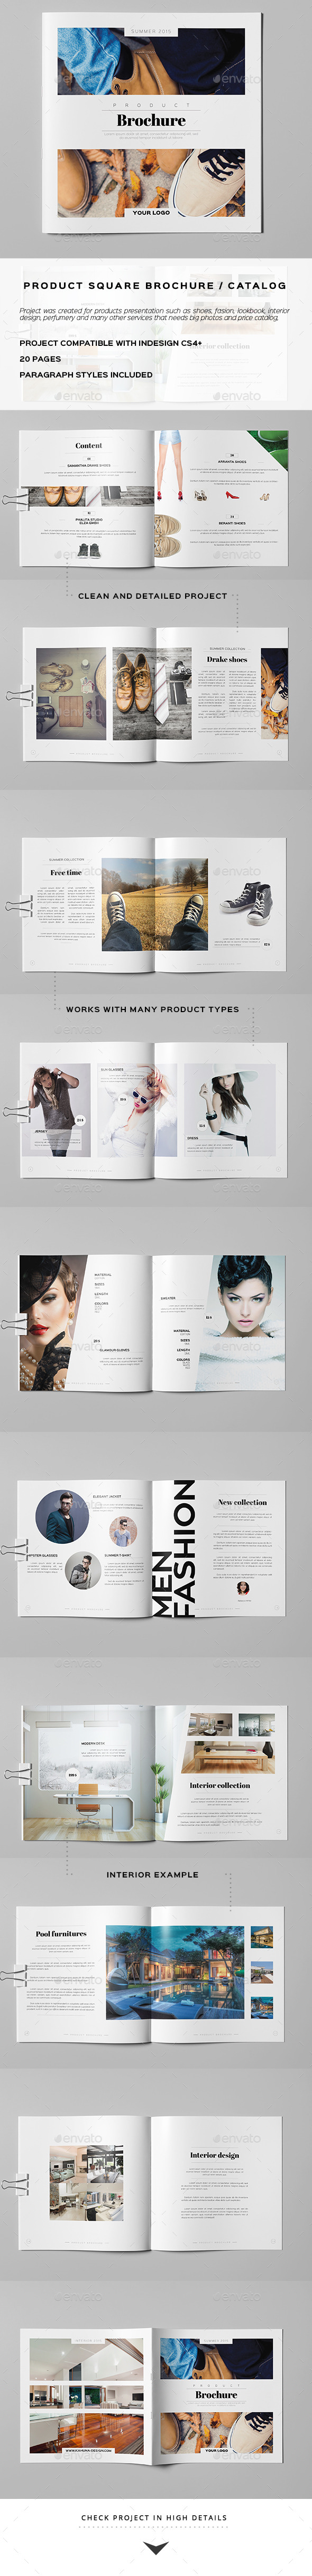 Product Square Brochure / Catalog - Catalogs Brochures